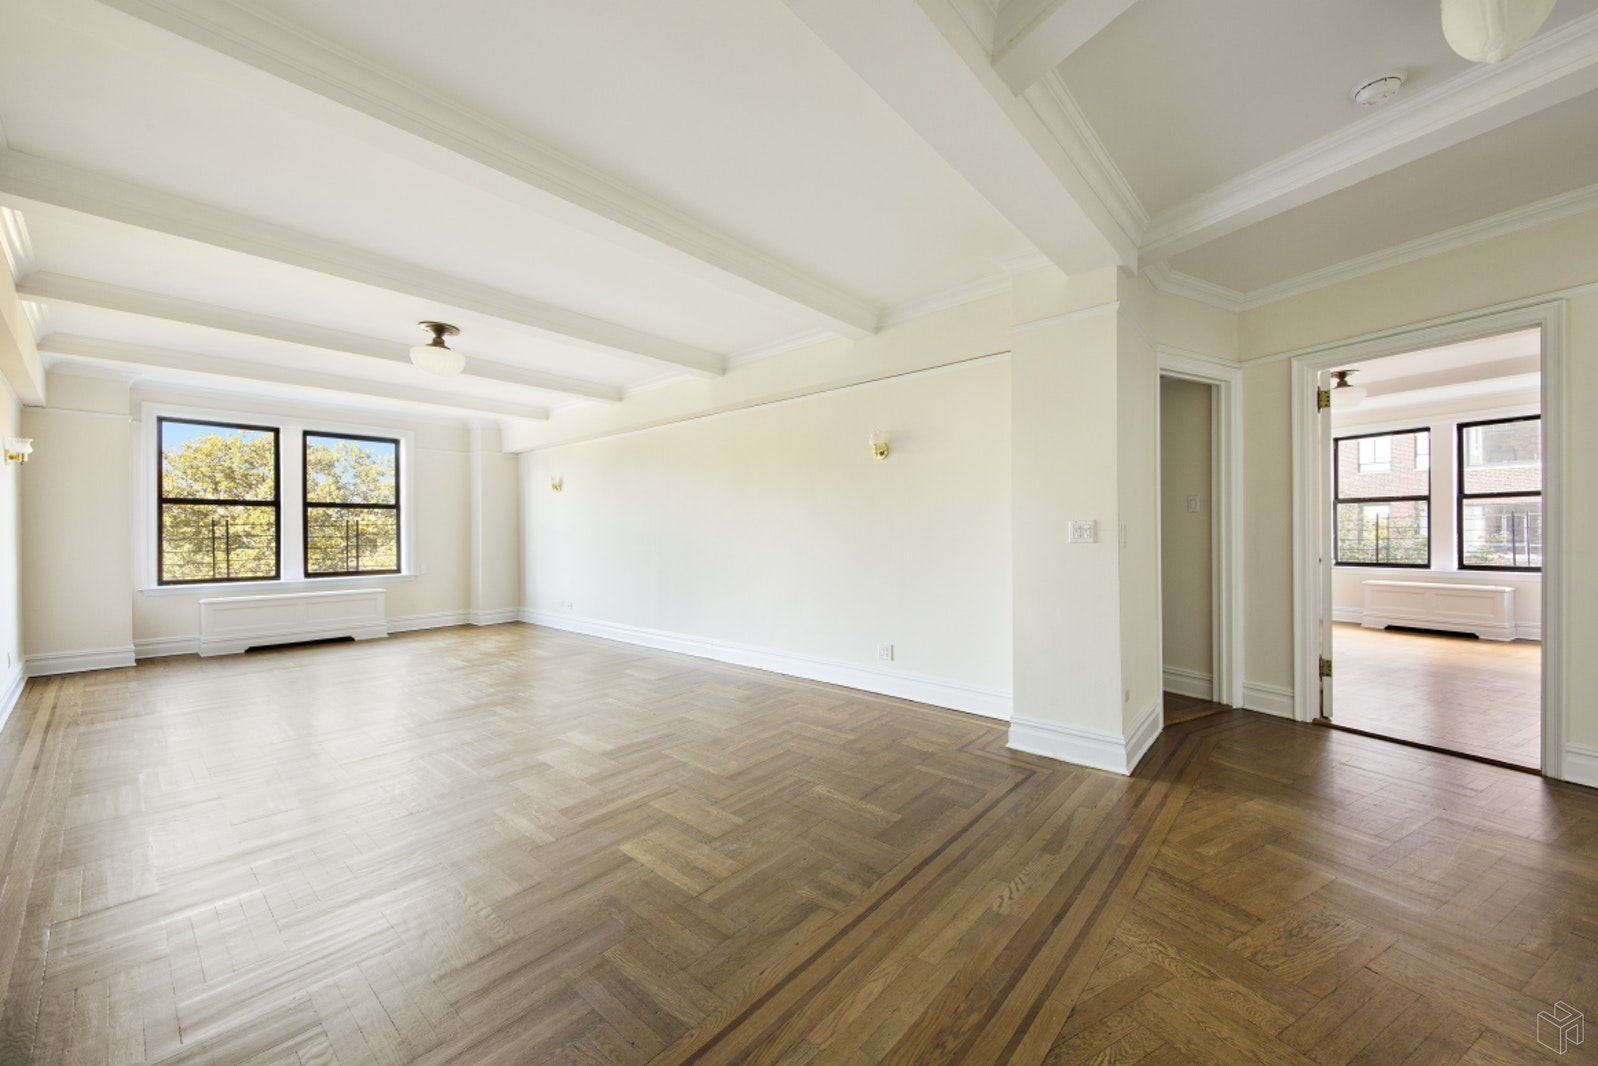 98 Riverside Drive 14a, Upper West Side, NYC, 10024, Price Not Disclosed, Rented Property, Halstead Real Estate, Photo 2